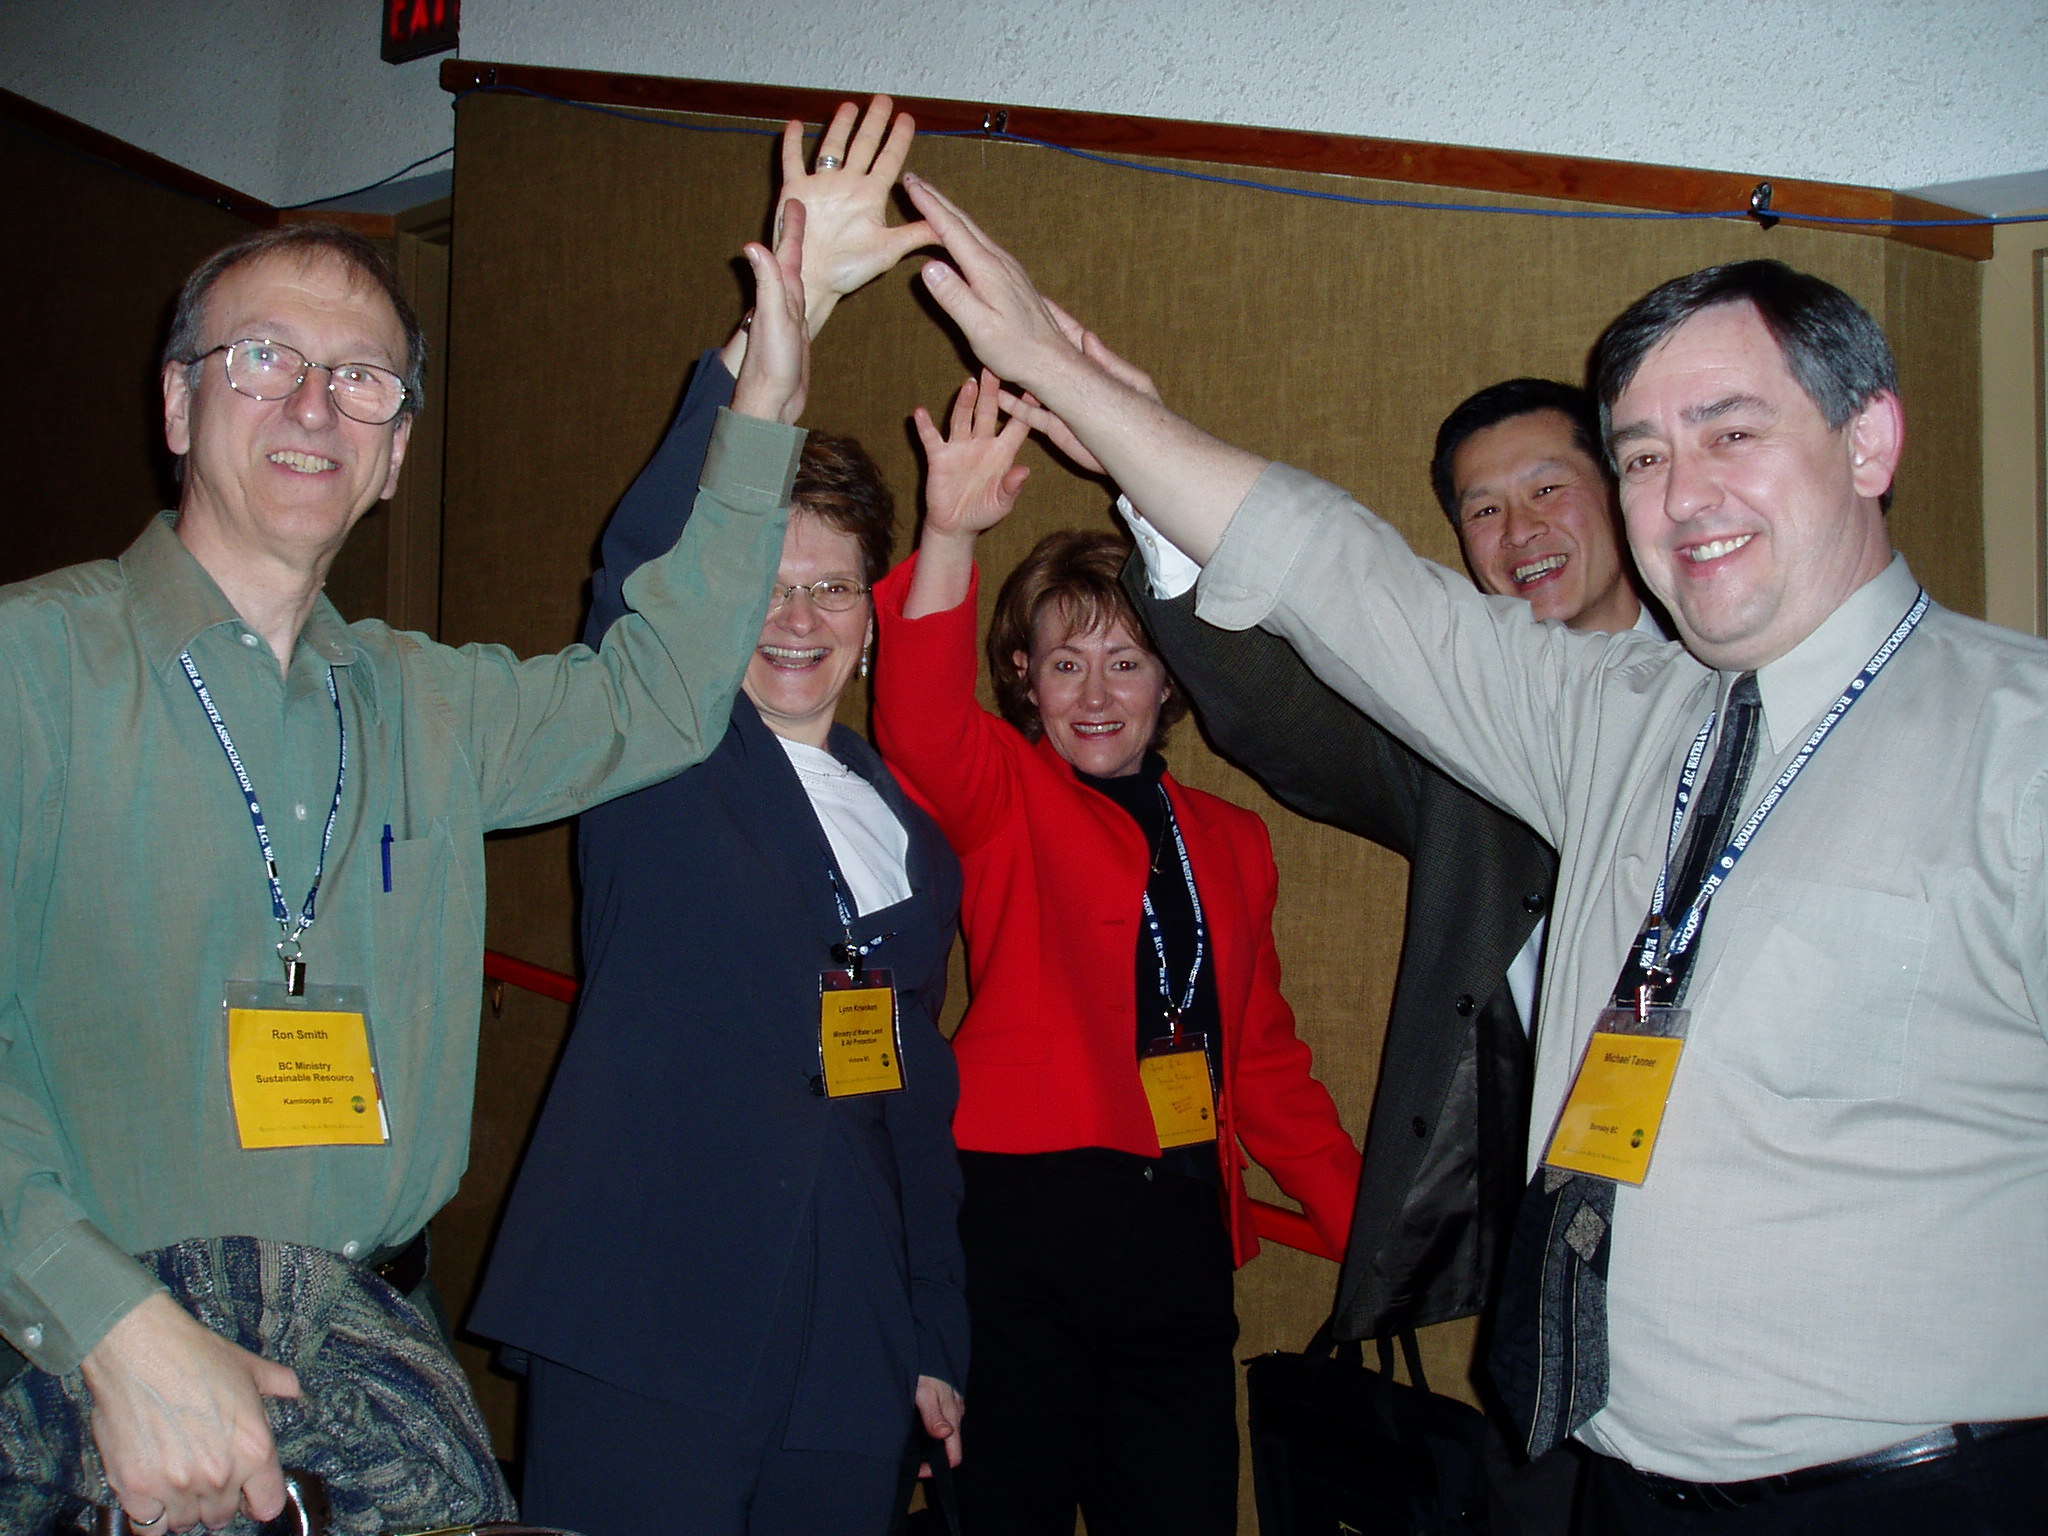 Members of the waterbucket.ca team celebrate the formal launch in Penticton in April 2005. From L to R: Ron Smith, Lynn Kriwoken, Joanne de Vries, Ray Fung and Mike Tanner.